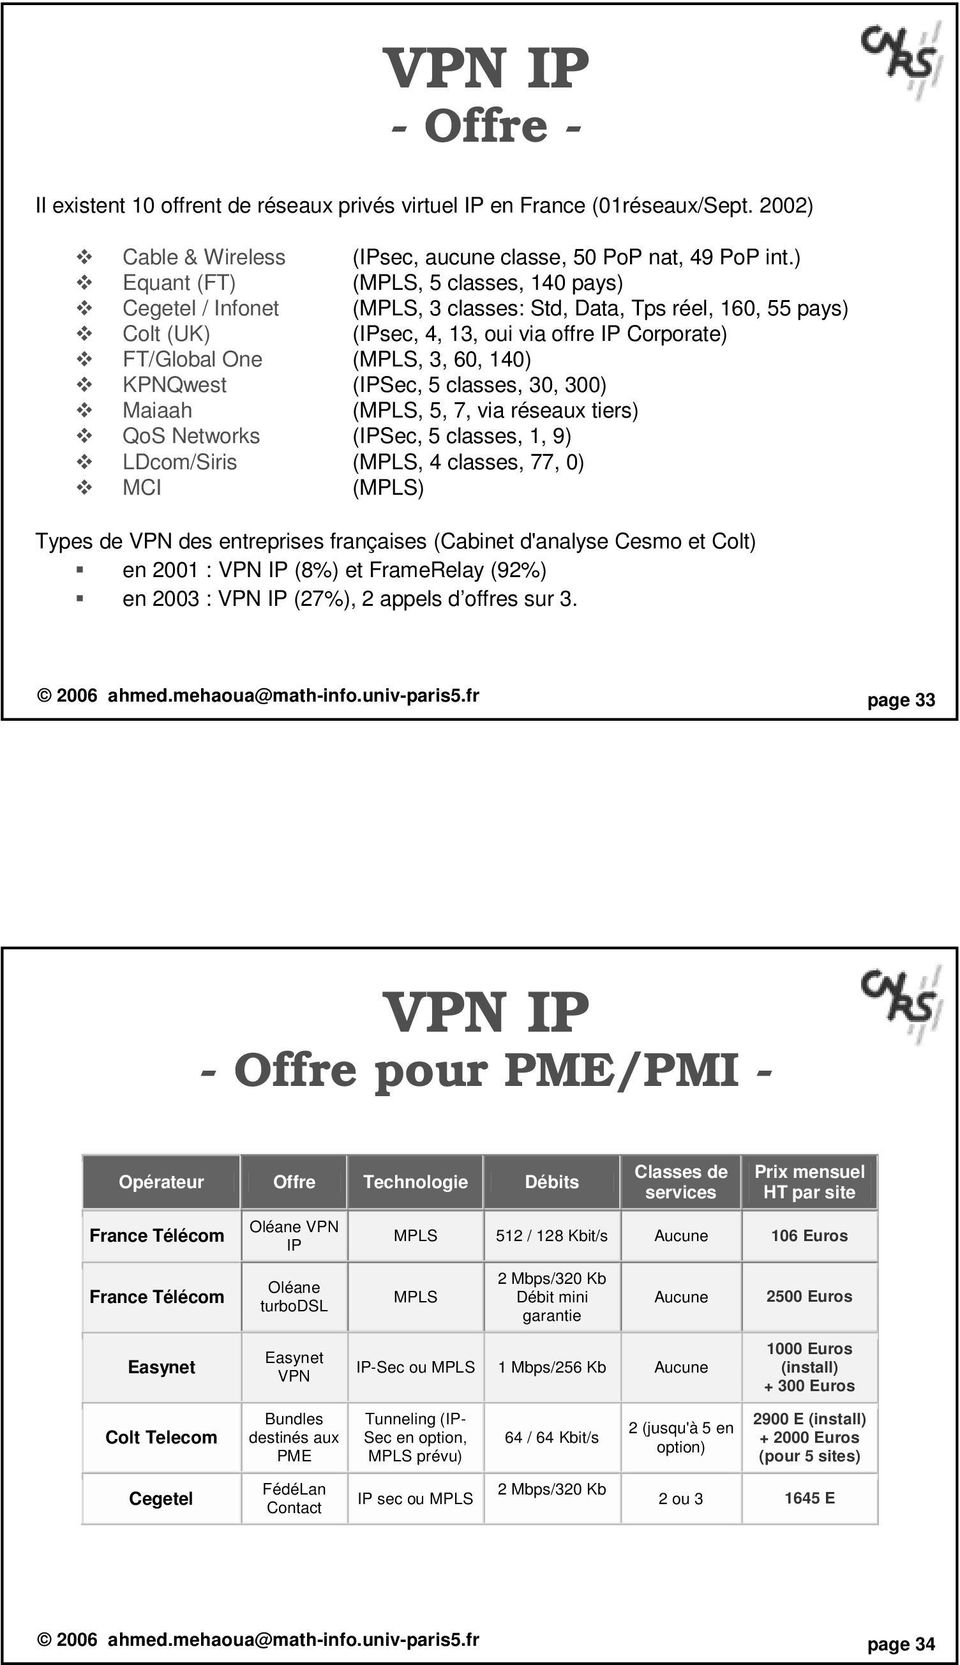 KPNQwest (IPSec, 5 classes, 30, 300) Maiaah (MPLS, 5, 7, via réseaux tiers) QoS Networks (IPSec, 5 classes, 1, 9) LDcom/Siris (MPLS, 4 classes, 77, 0) MCI (MPLS) Types de VPN des entreprises